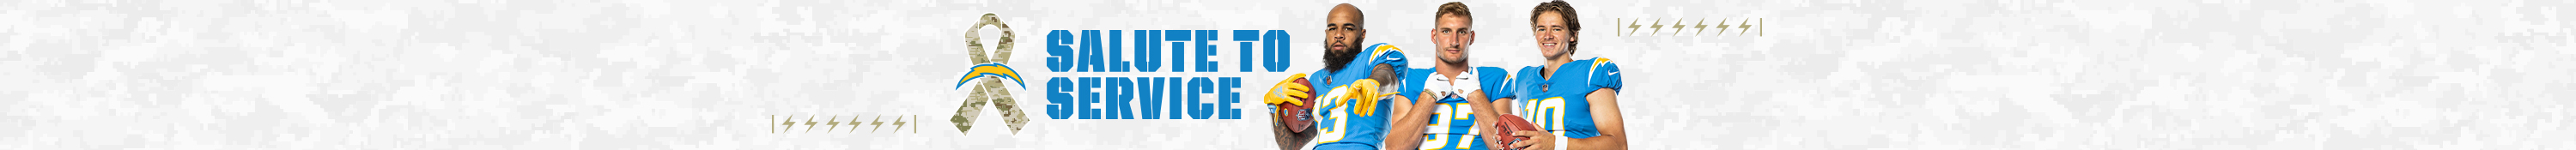 Chargers Contact Us Los Angeles Chargers Chargers Com